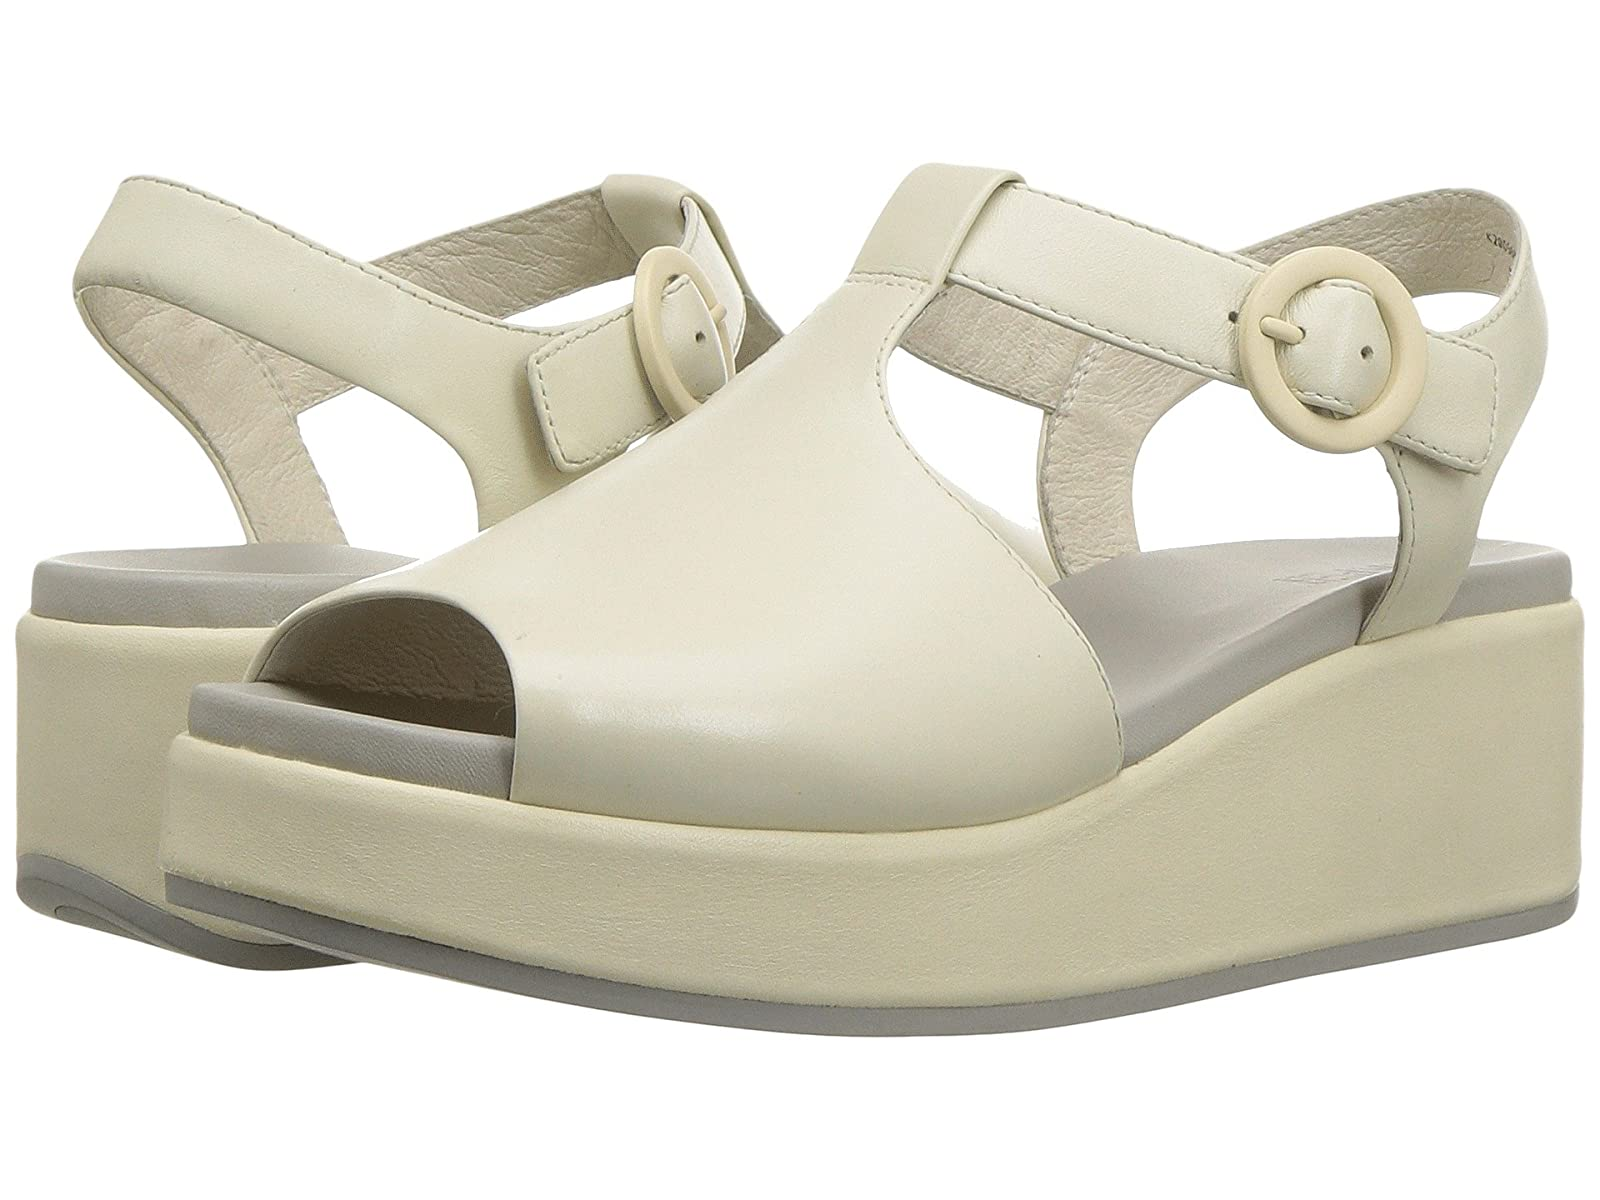 Camper Misia - K200568Cheap and distinctive eye-catching shoes